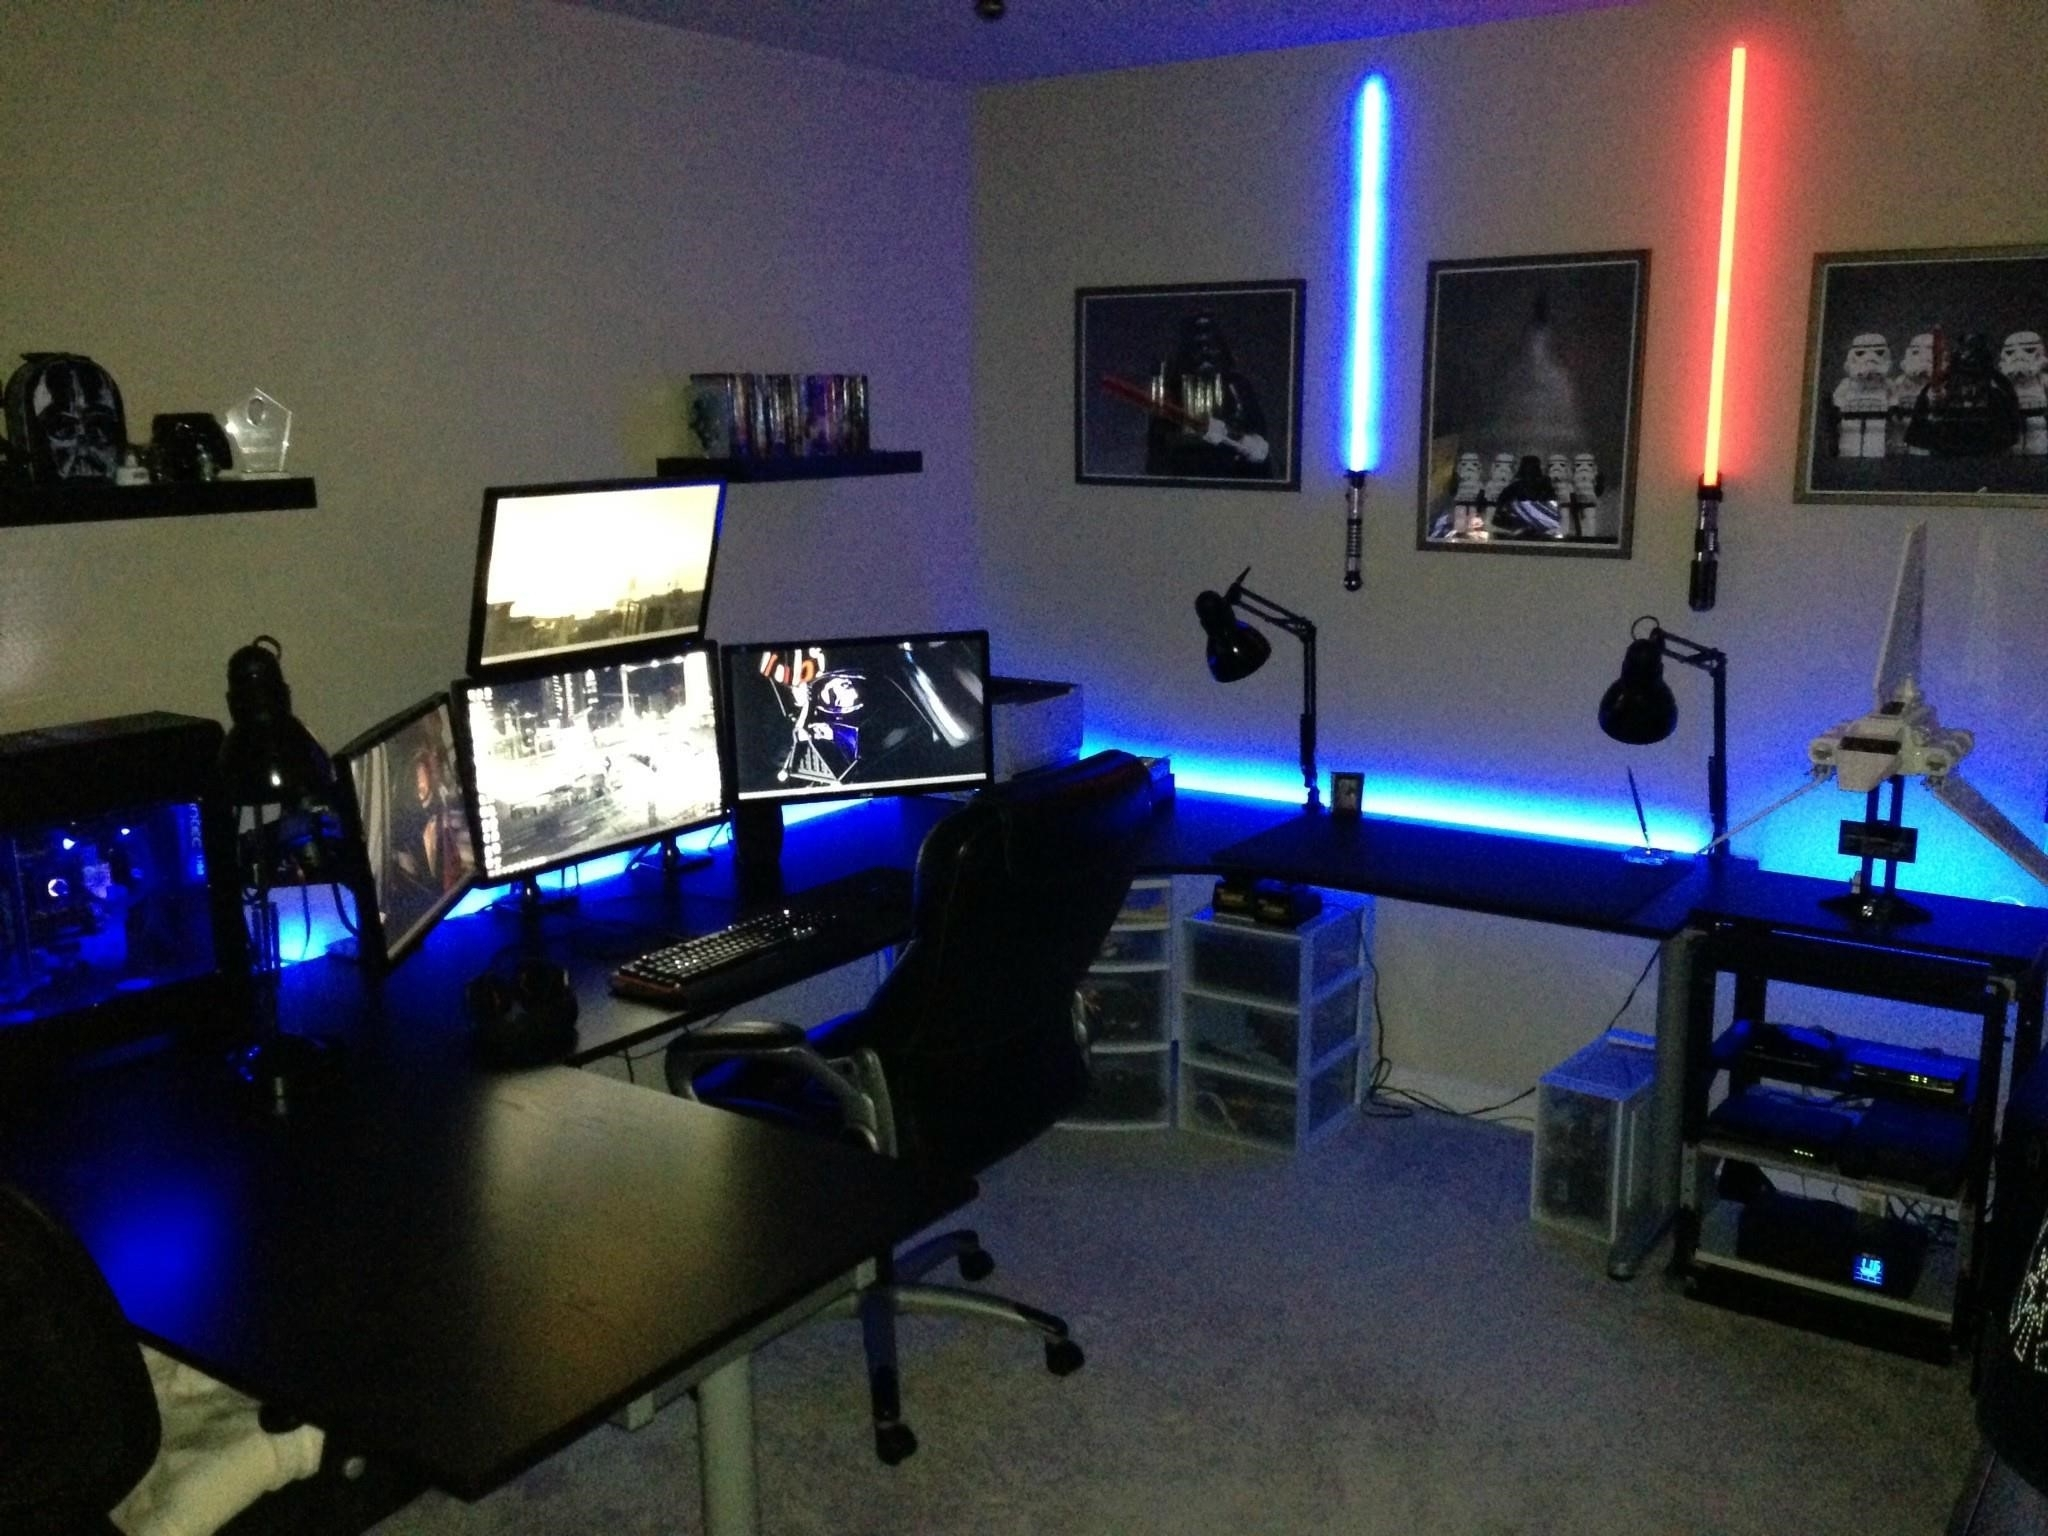 Terrific Gaming Computer Desks For Home Pictures Decoration Ideas With Best And Newest Computer Gaming Desks For Home (View 19 of 20)